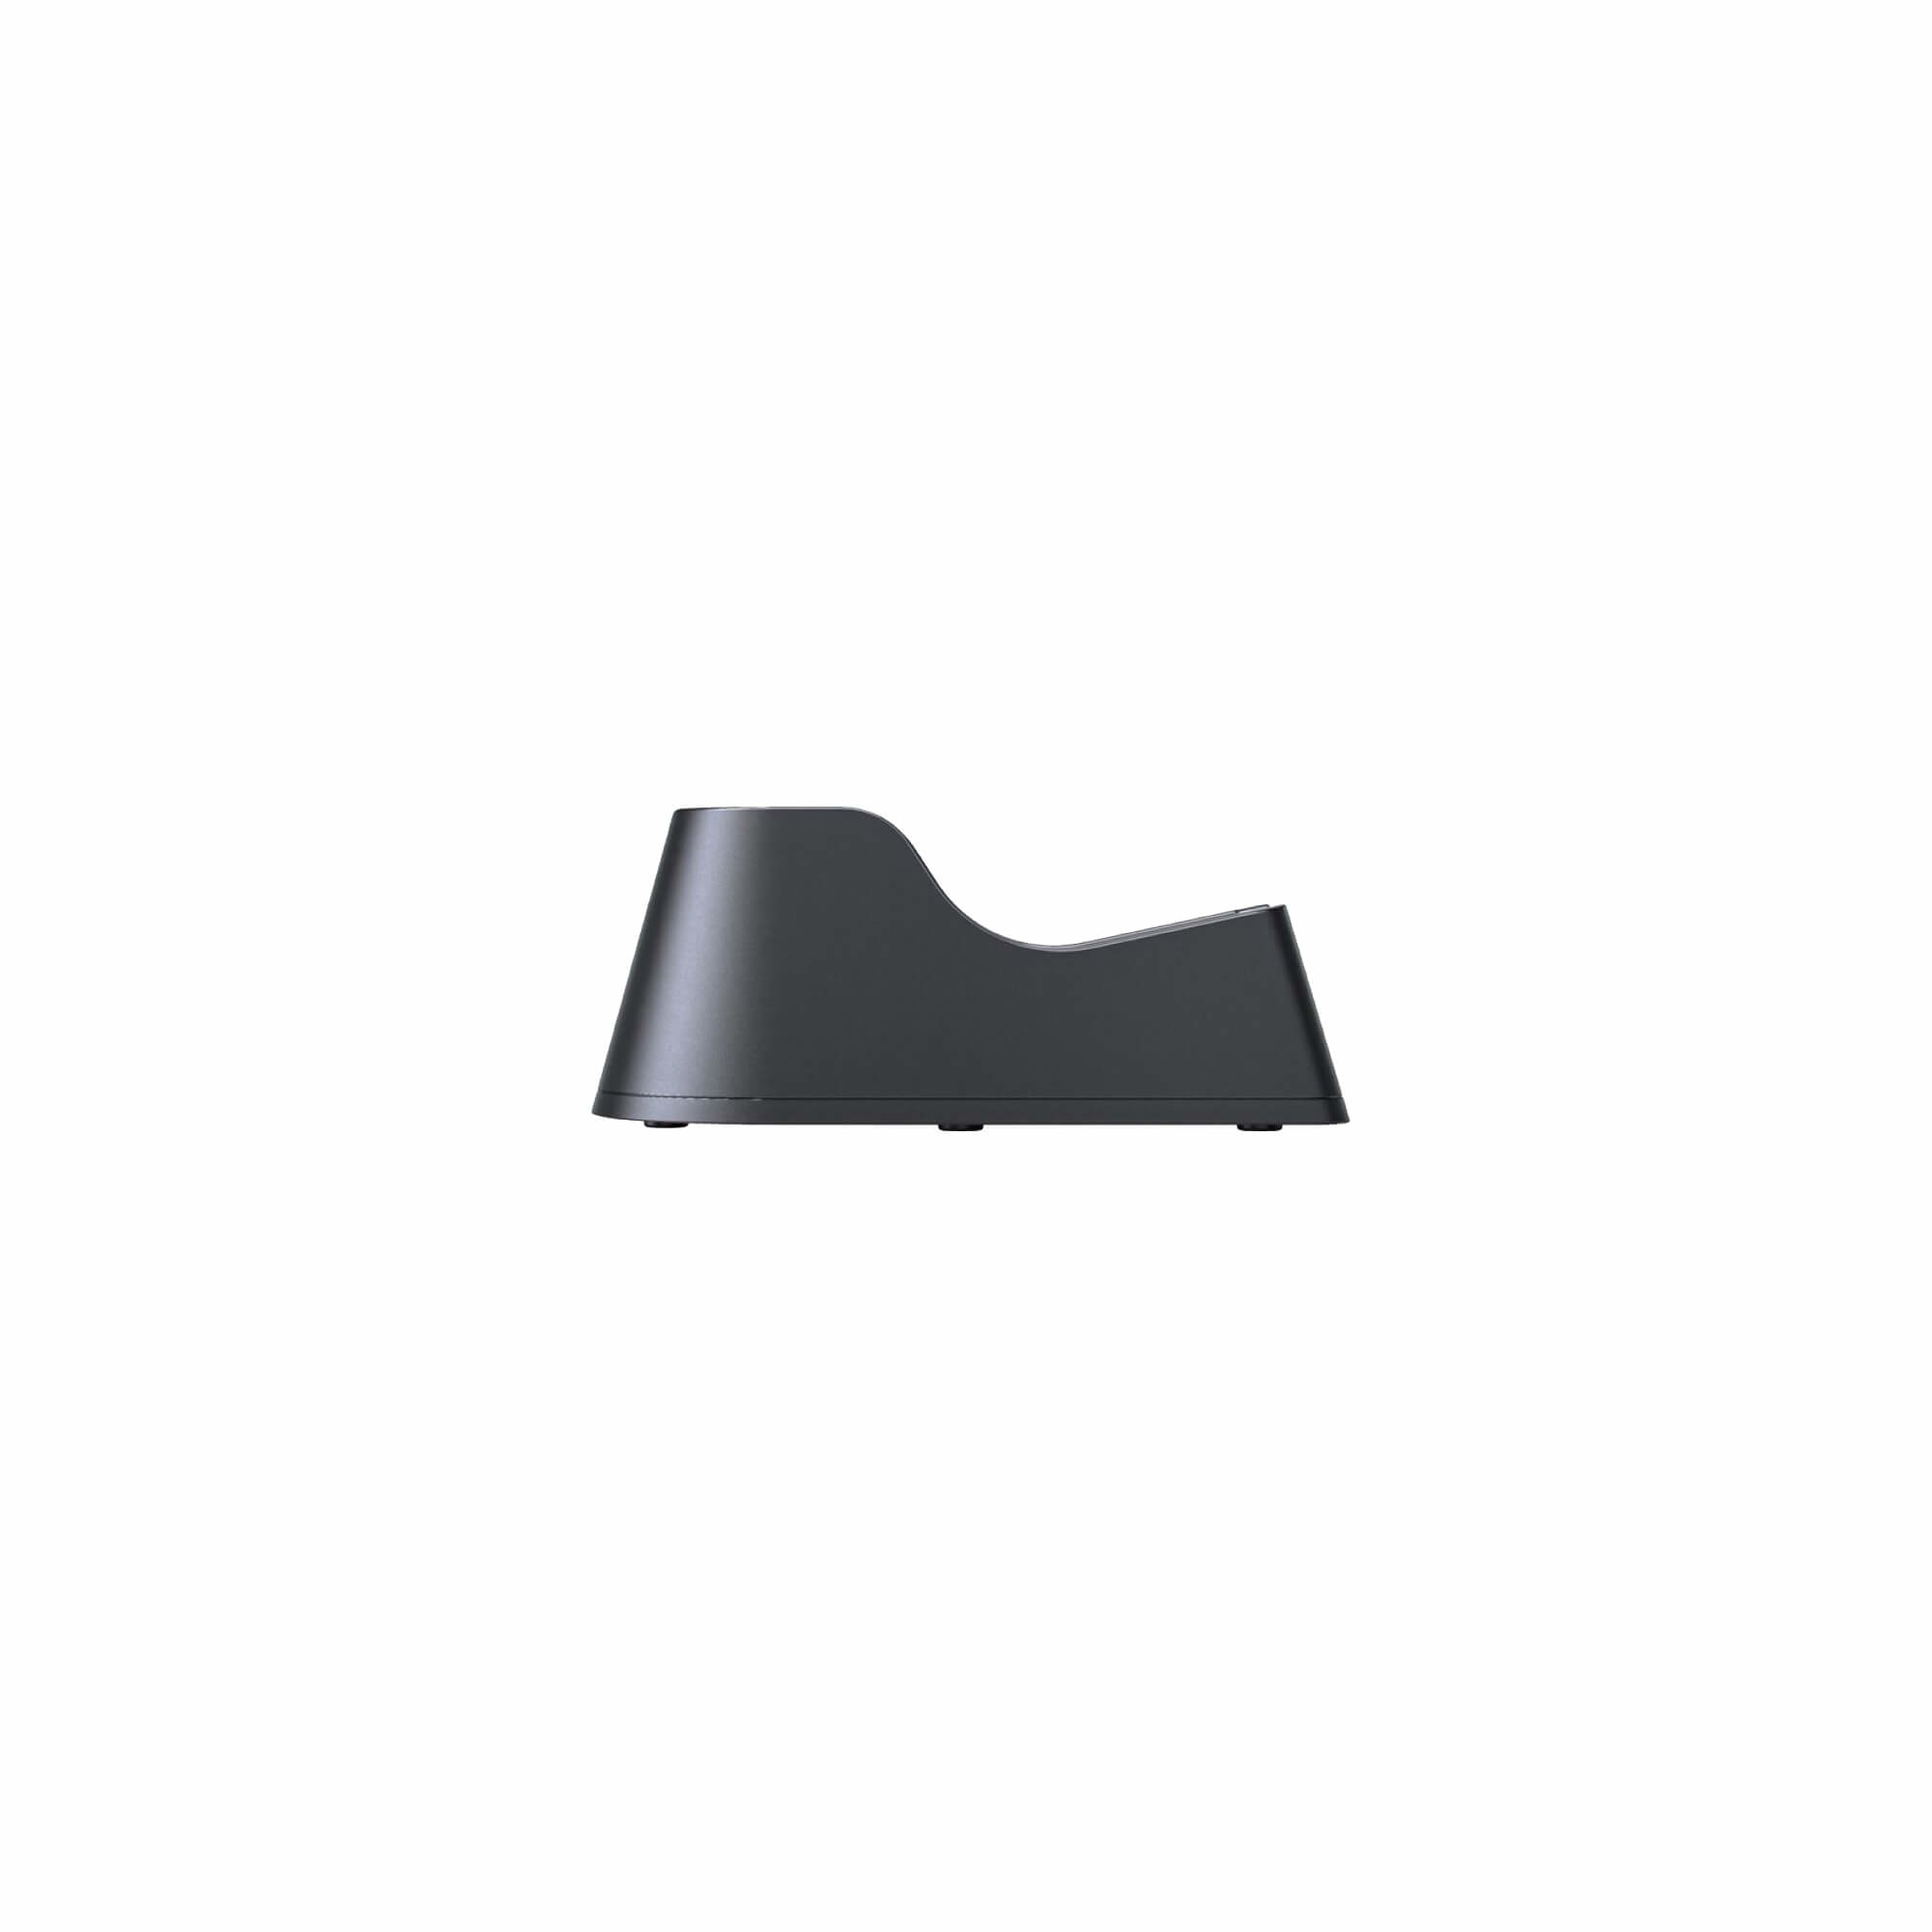 Charger Charging Stand For Gen4 Prime-3